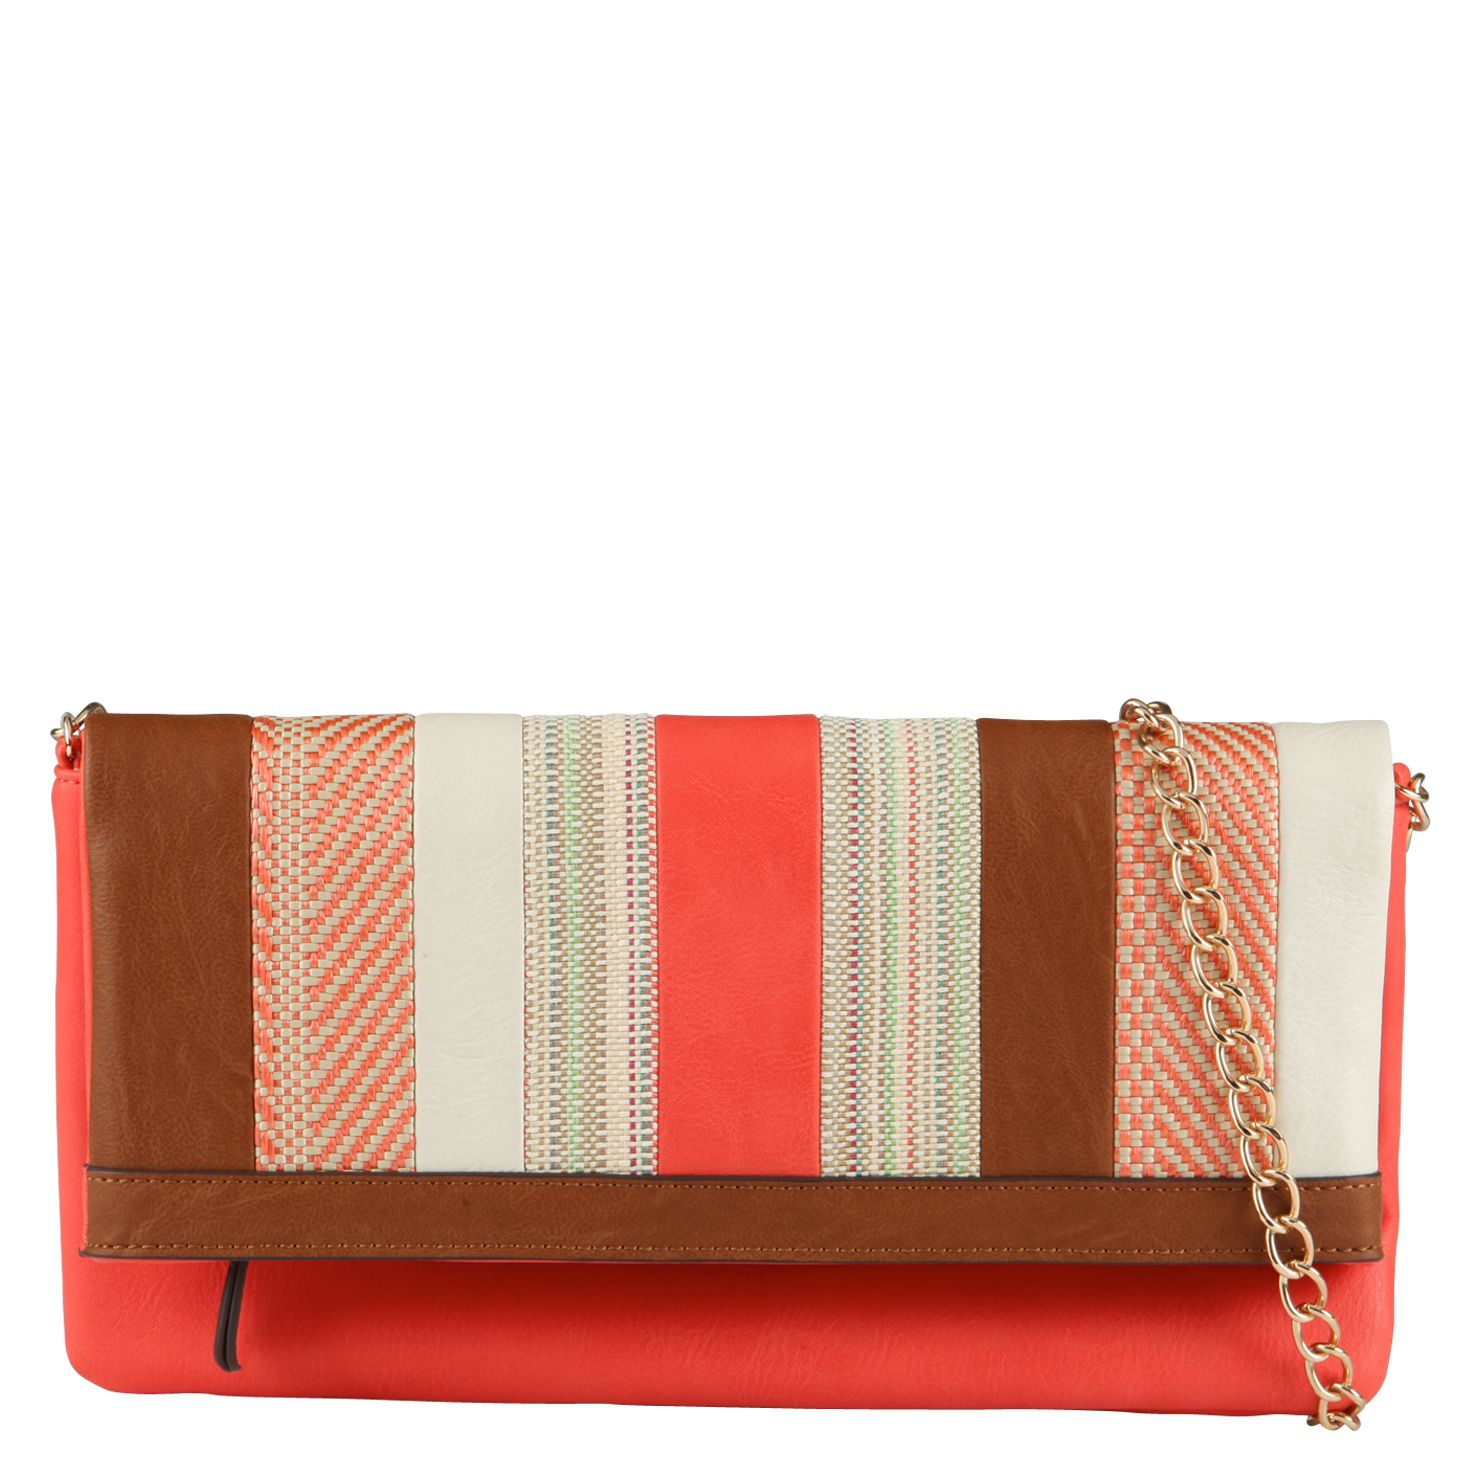 Gudino clutch bag